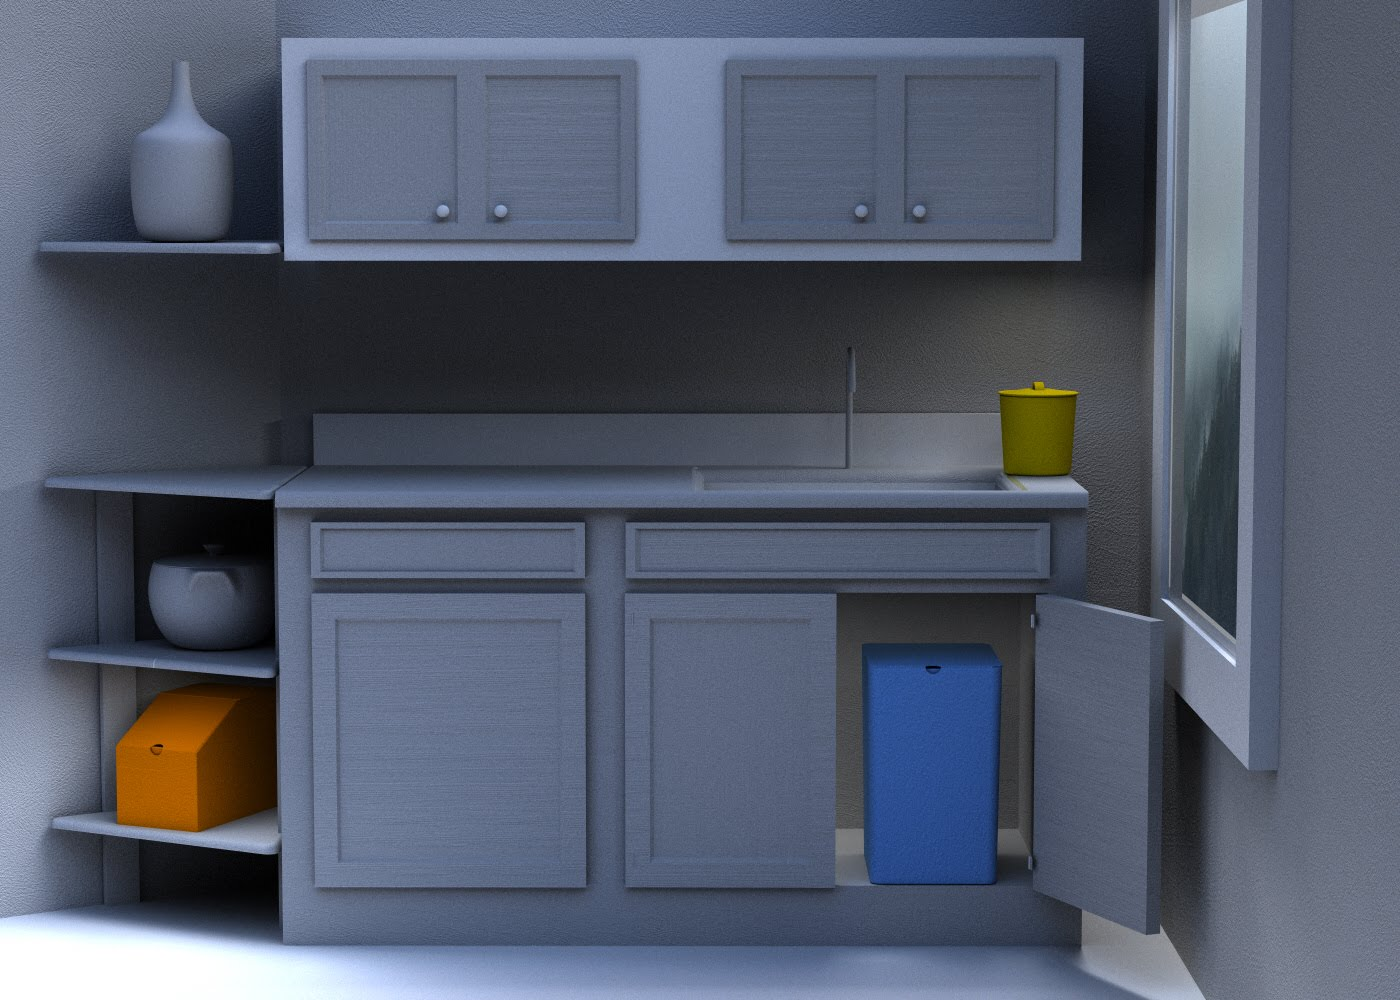 The S.O.R.T. Kitchen System